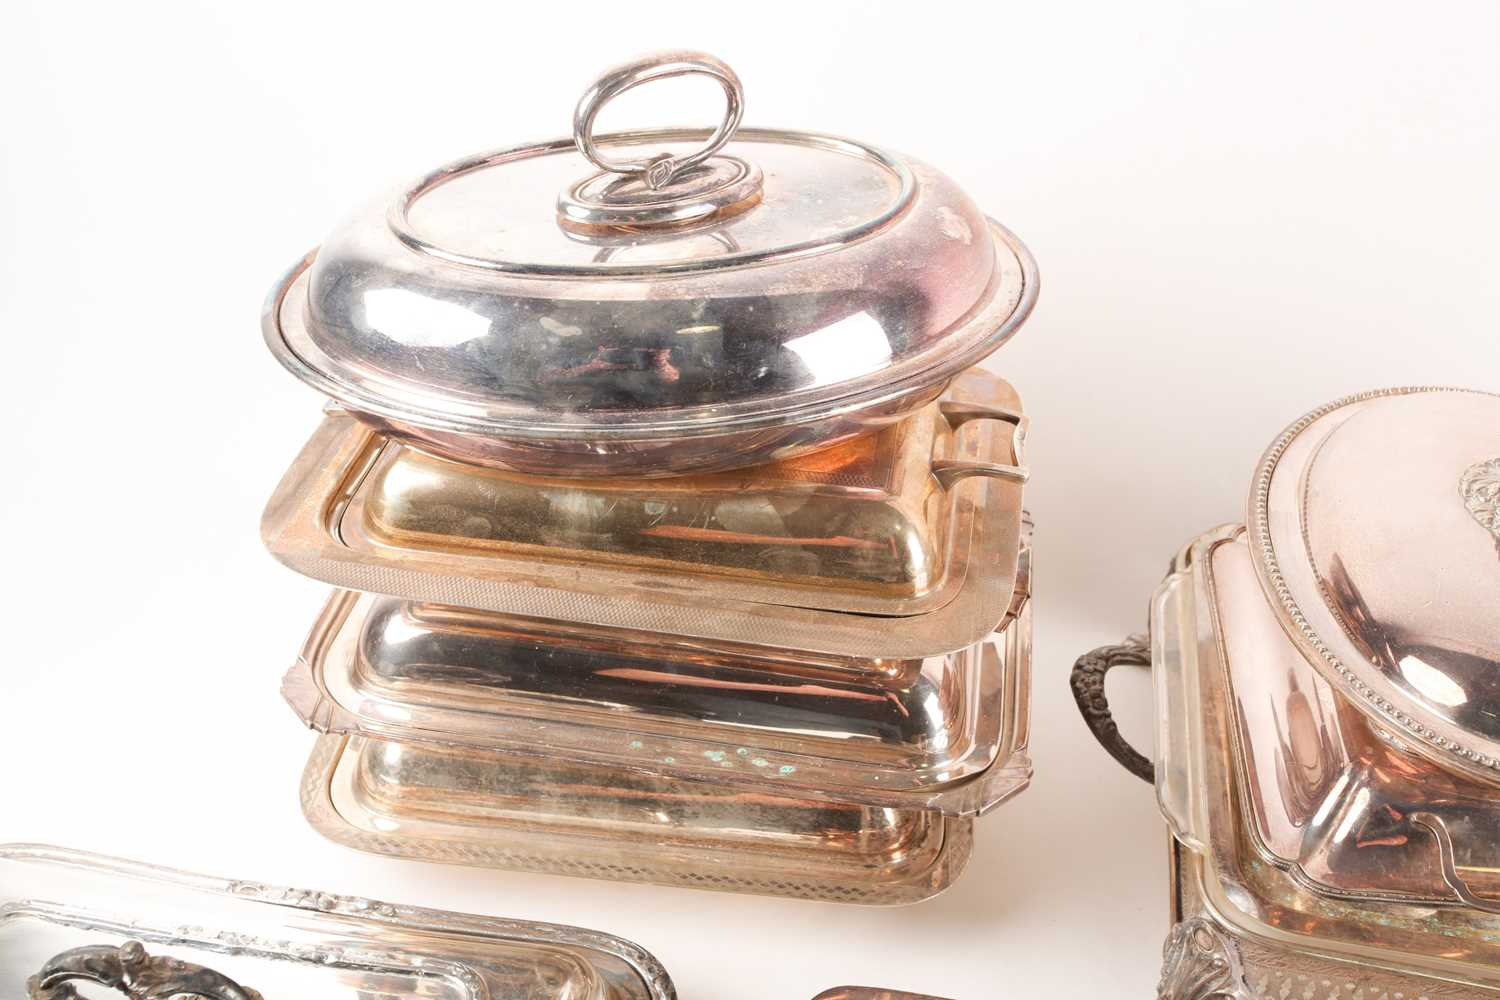 A pair of 19th century silver plated tureens and covers, the covers with shield shape cartouch - Image 4 of 5